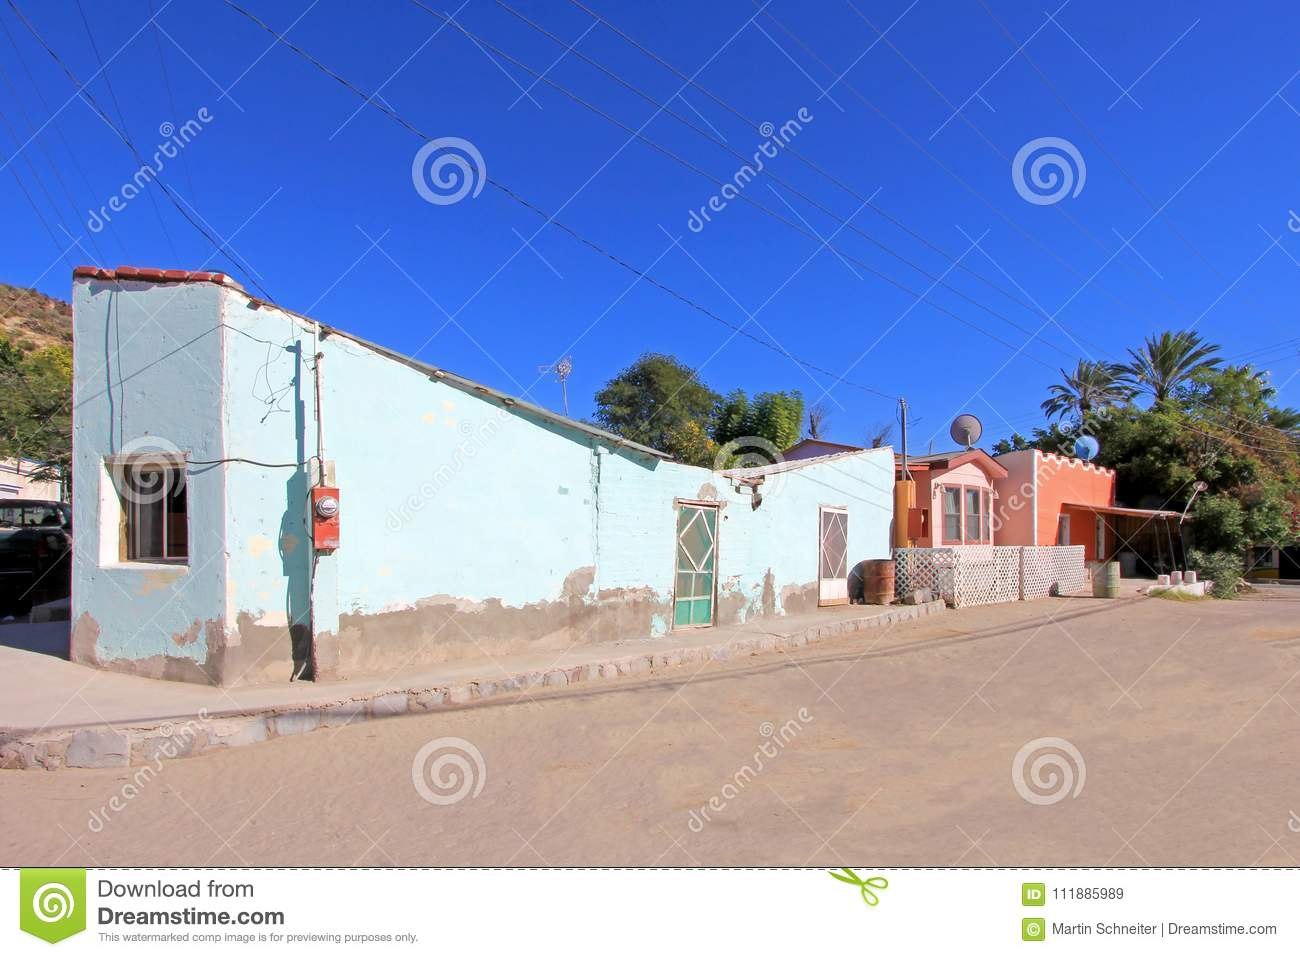 Colorful traditional houses in the streets of the Mission San Ignacio, Baja California, Mexico